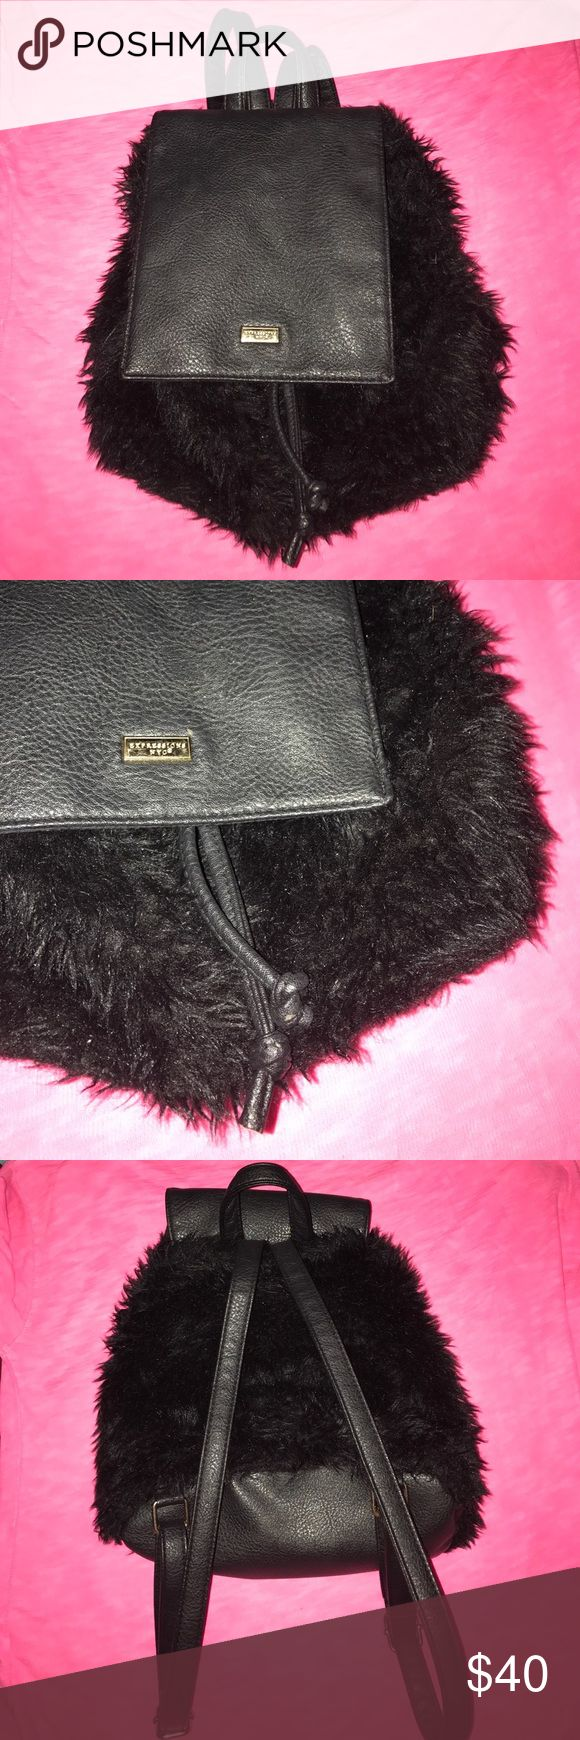 Fluffy Clueless style backpack by NYC Expressions Faux fur black mini backpack, adjustable straps, zipped pocket inside and two pockets on inside. By NYC Expressions. Has a slight flaw on fur as shown on photo. Super cute style. Similar to Chanel, NastyGal & Dollskill style Nasty Gal Bags Backpacks